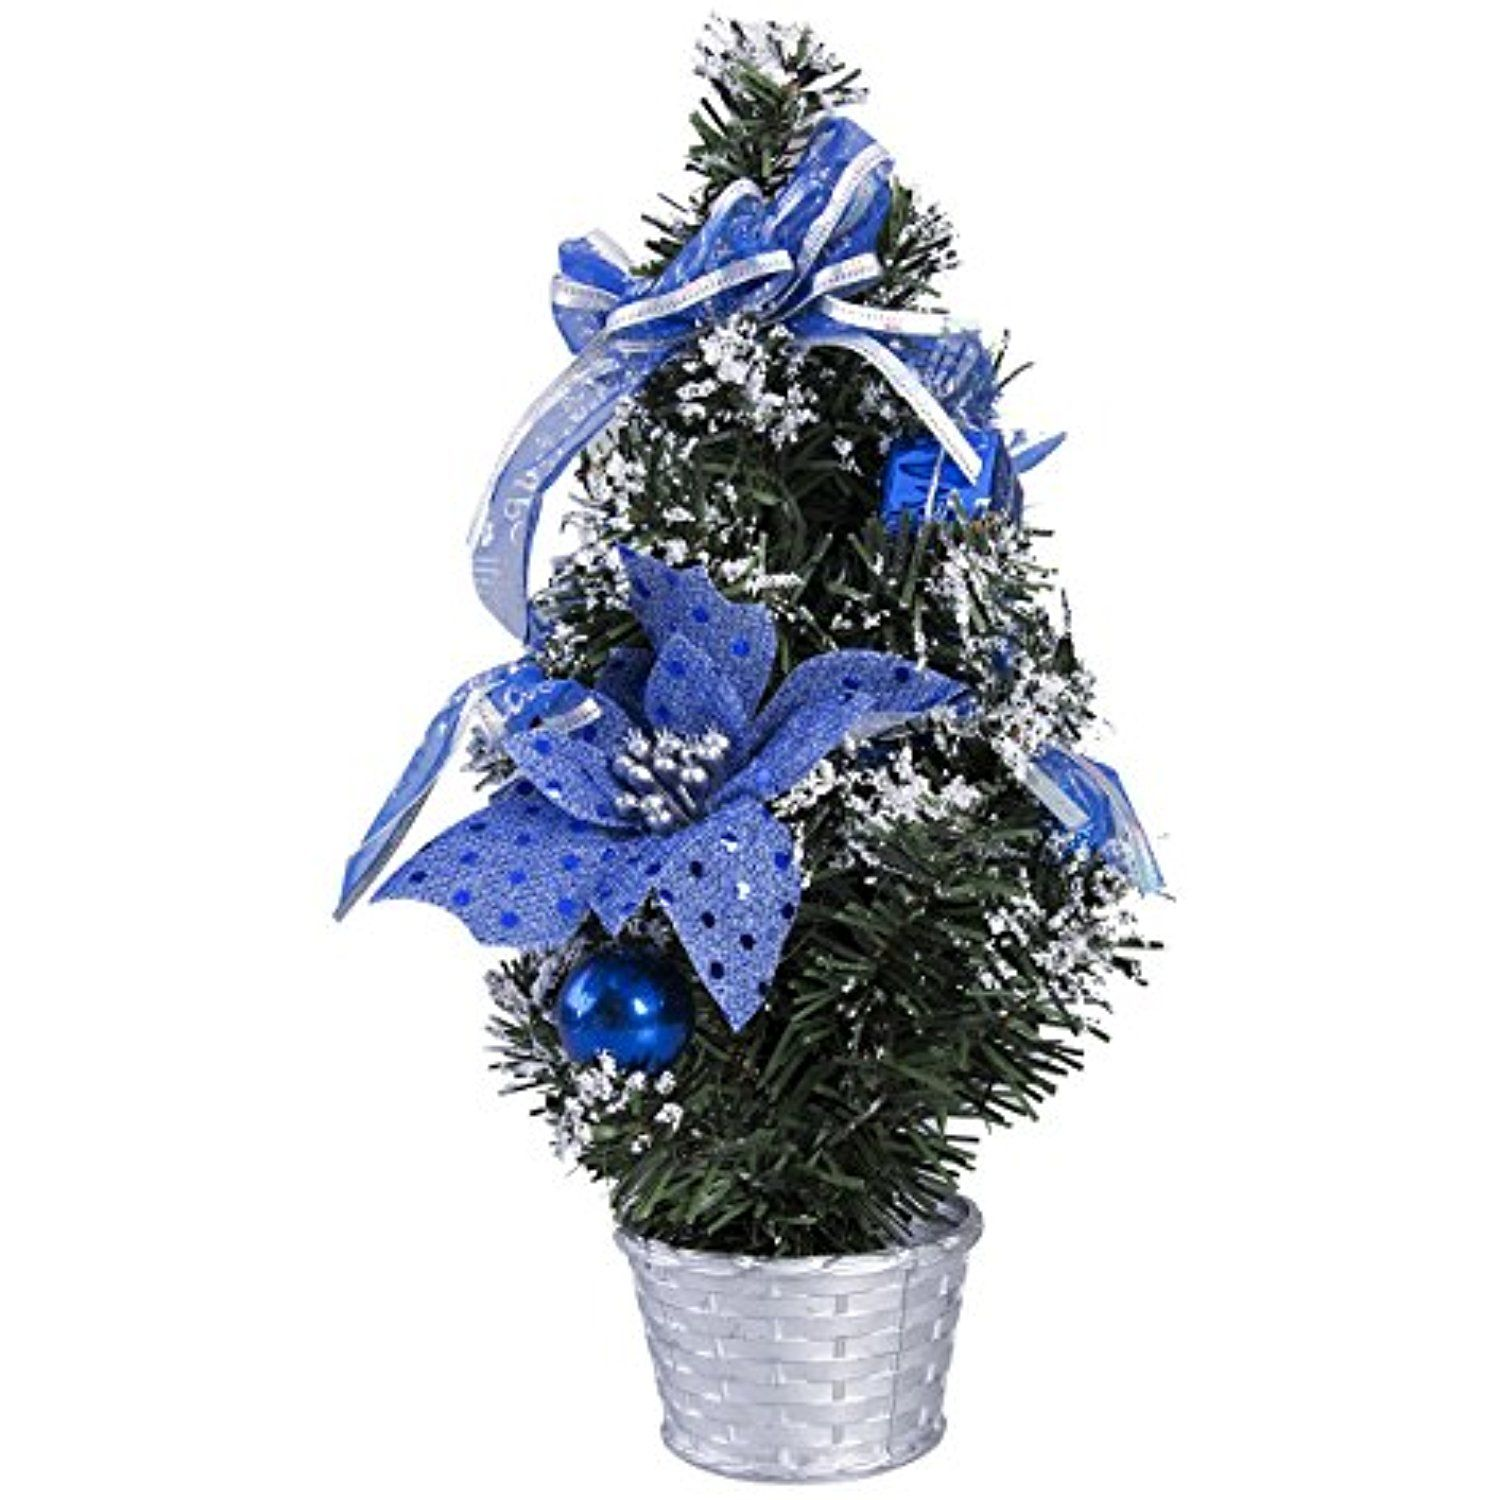 Artificial Christmas Tree with Christmas Decoration Balls Bows and